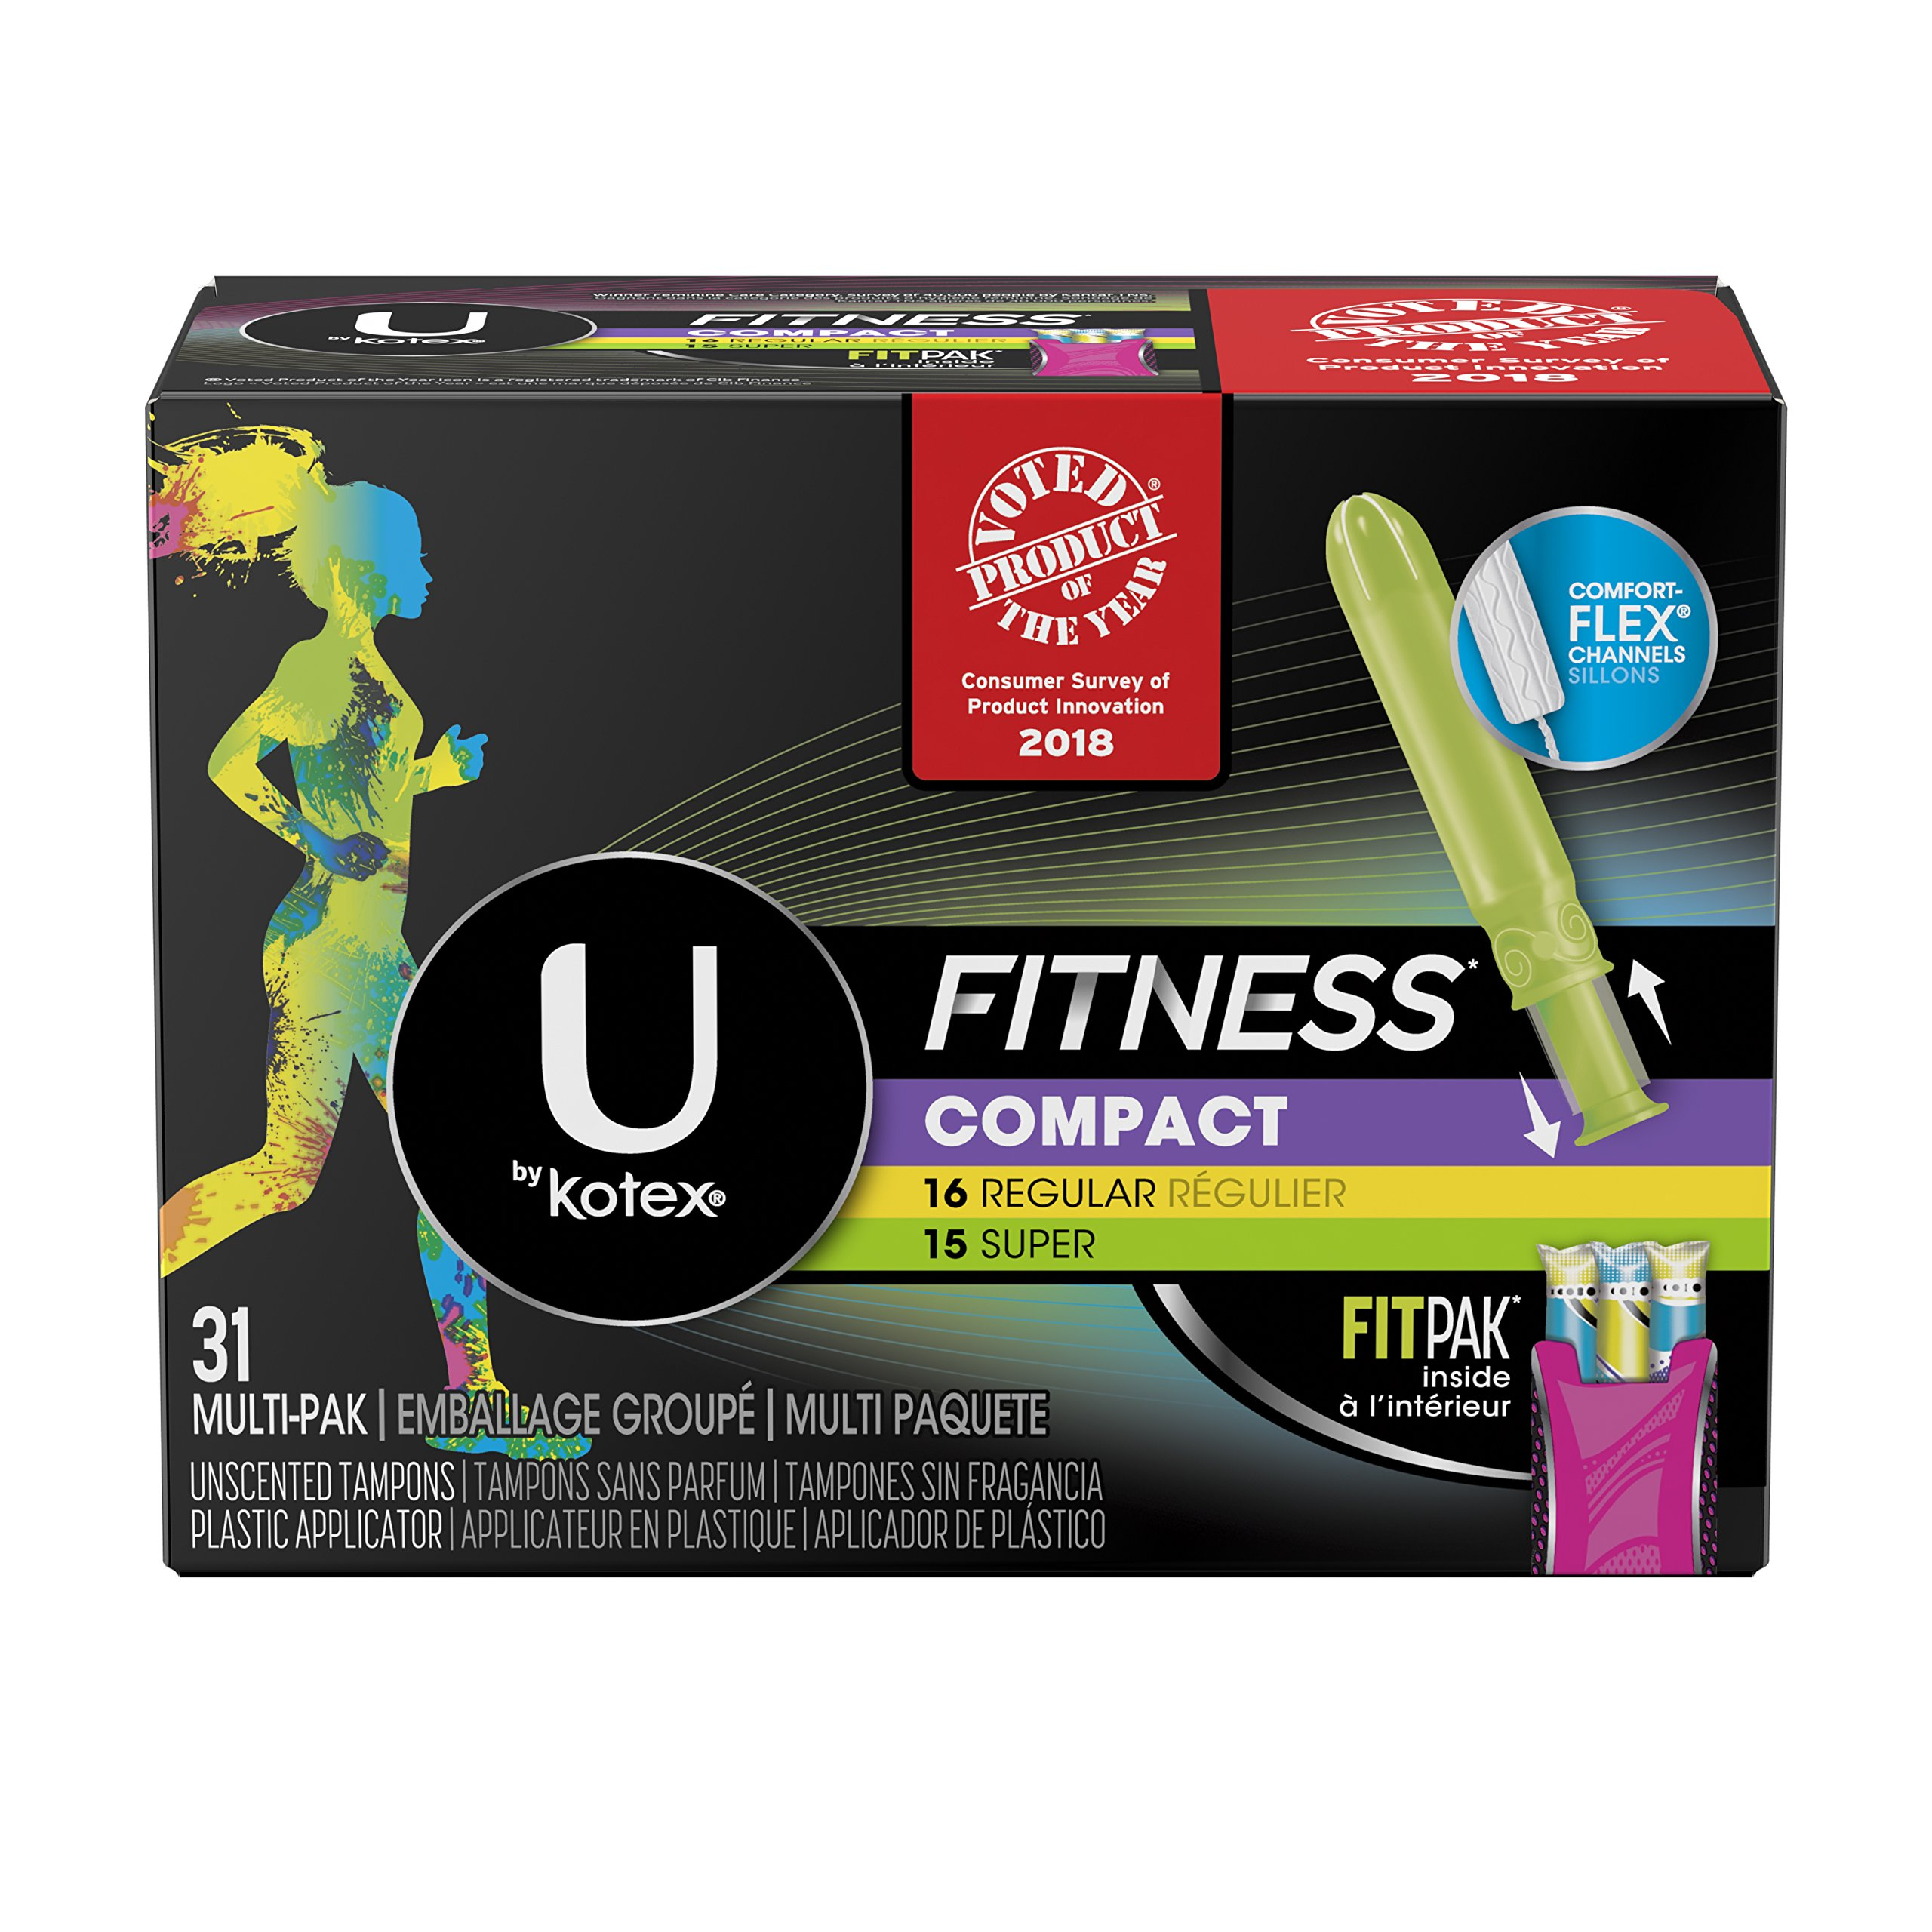 U by Kotex Fitness Tampons with FITPAK, Regular/Super Absorbency, Fregrance-Free, 31 Count, Pack of 6 (186 Total Tampons)